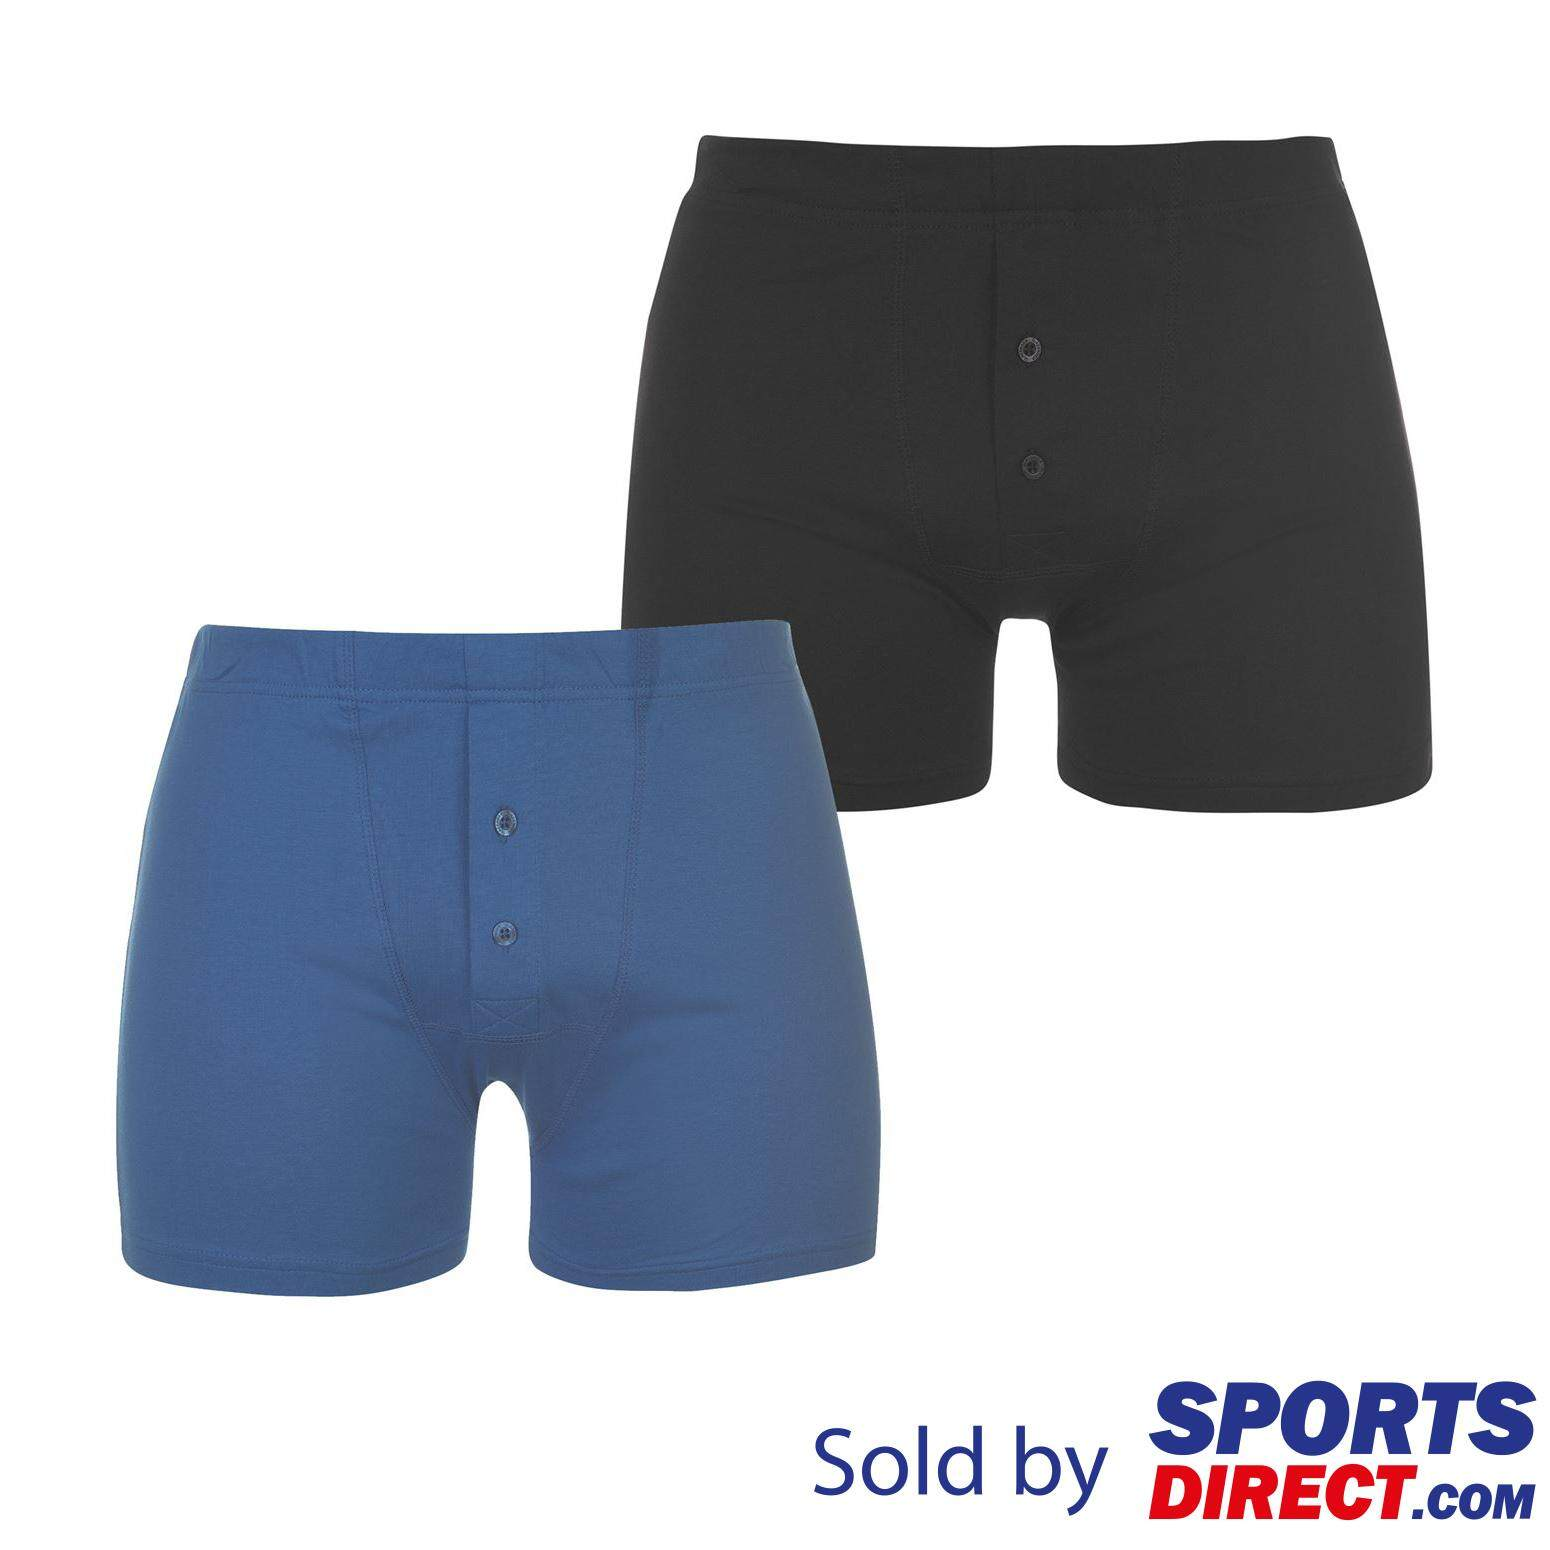 Slazenger Mens 2 Pack Boxers (navy/blue) By Sports Direct Mst Sdn Bhd.